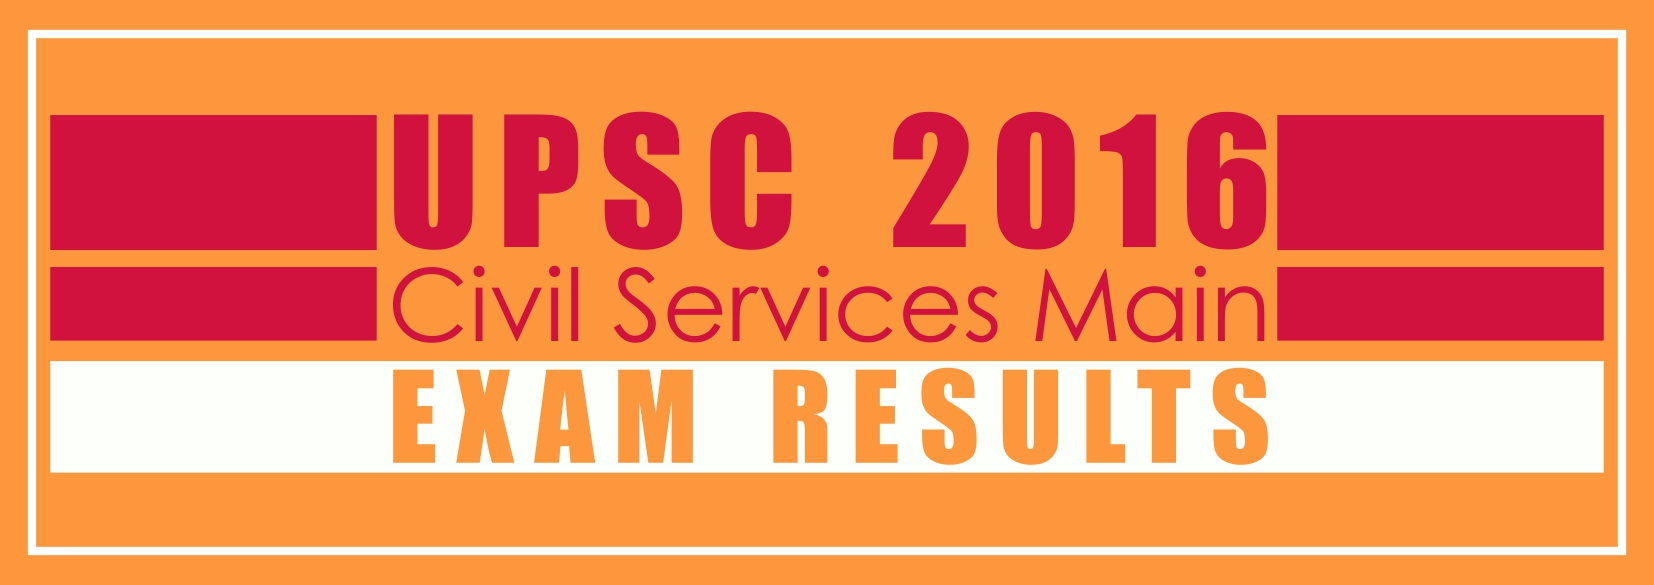 Civil service essay online result march 2017